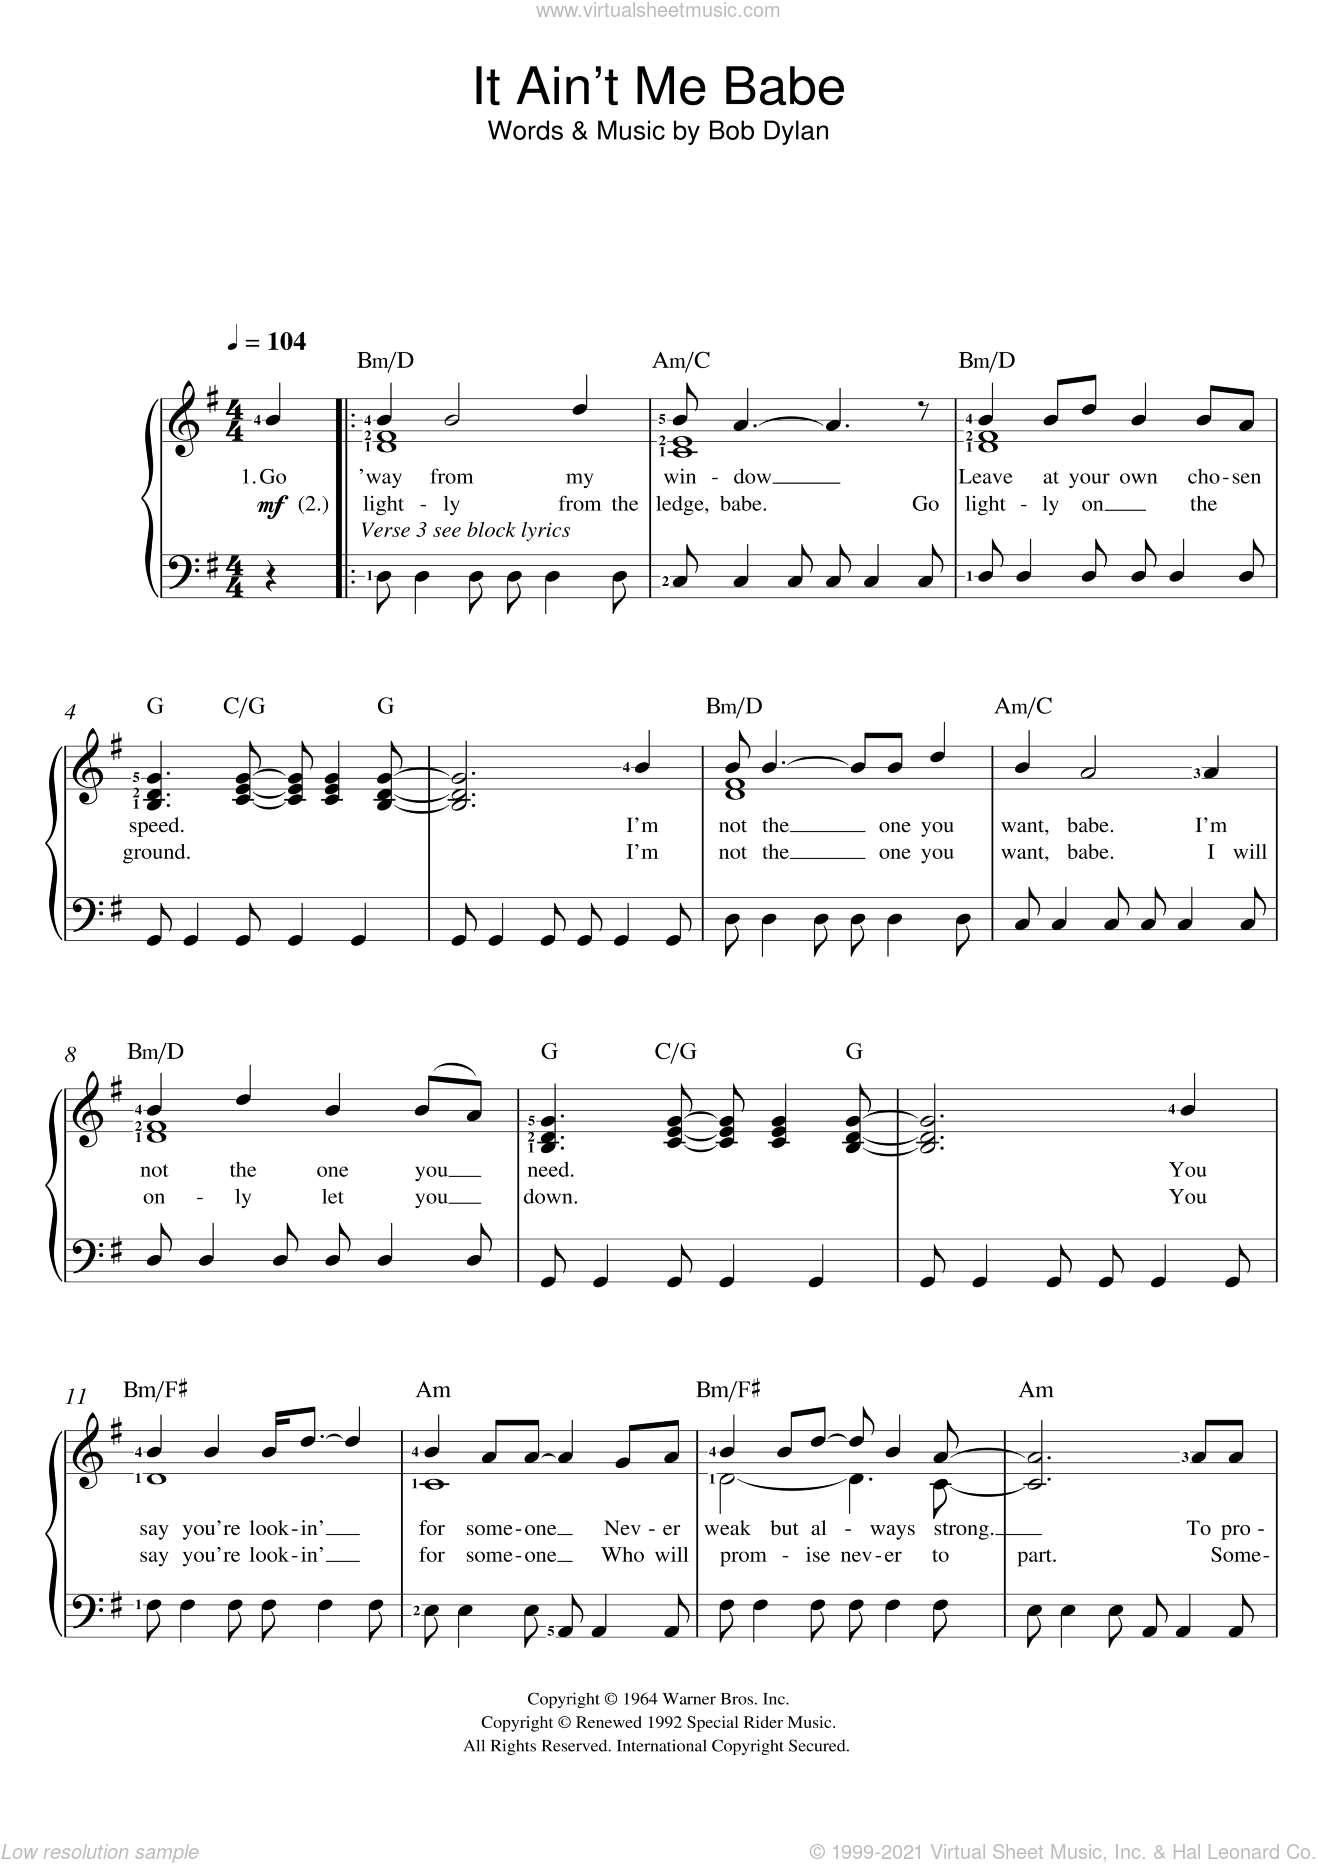 It Ain't Me Babe sheet music for voice and piano by Bob Dylan, intermediate